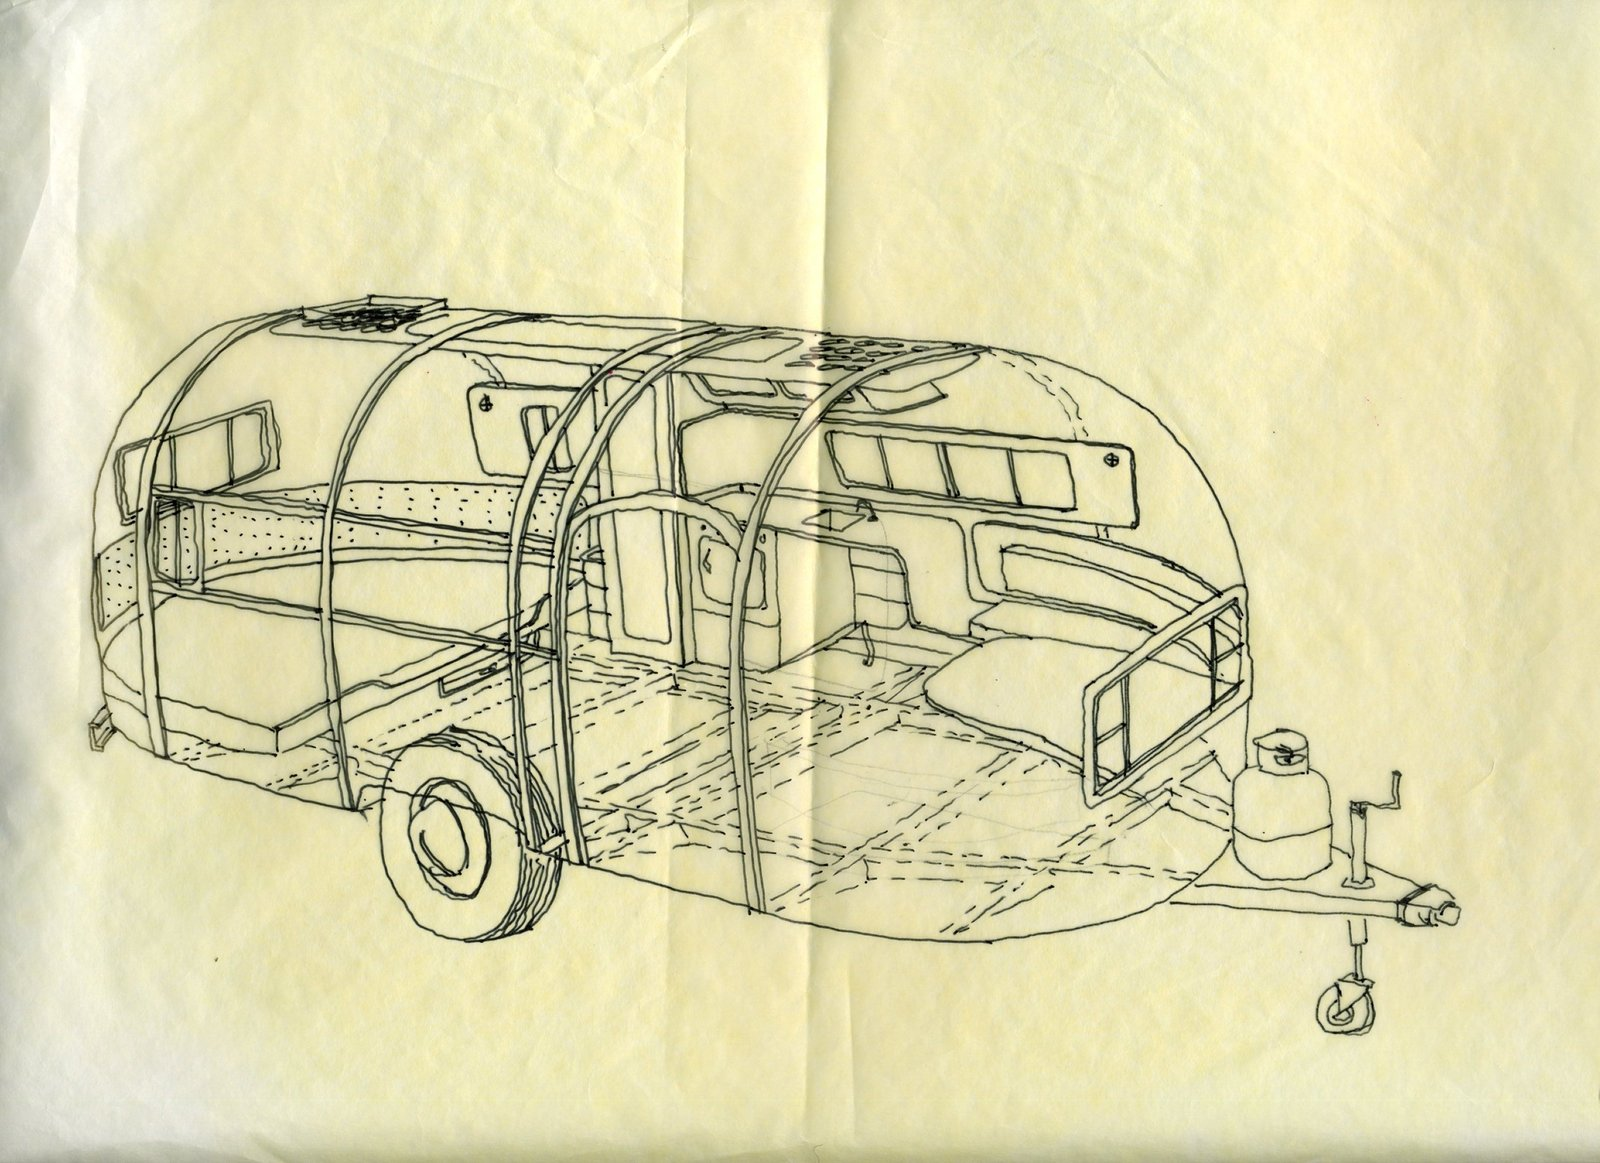 Photo 2 of 8 in Airstream: Re-designing an American icon